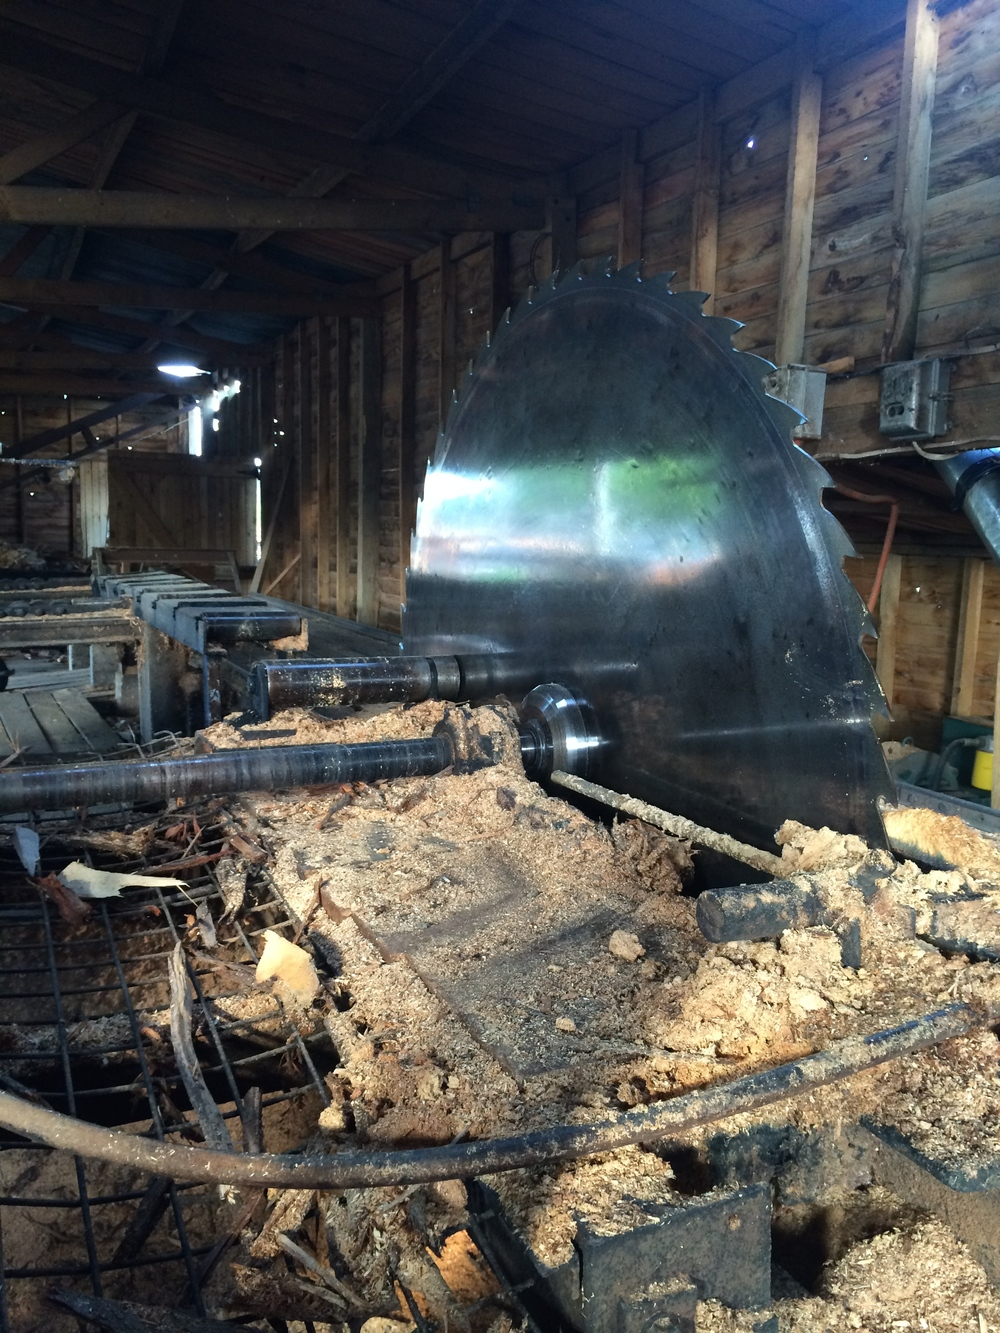 We visited the functioning 1930s saw mill in town to pick up timber